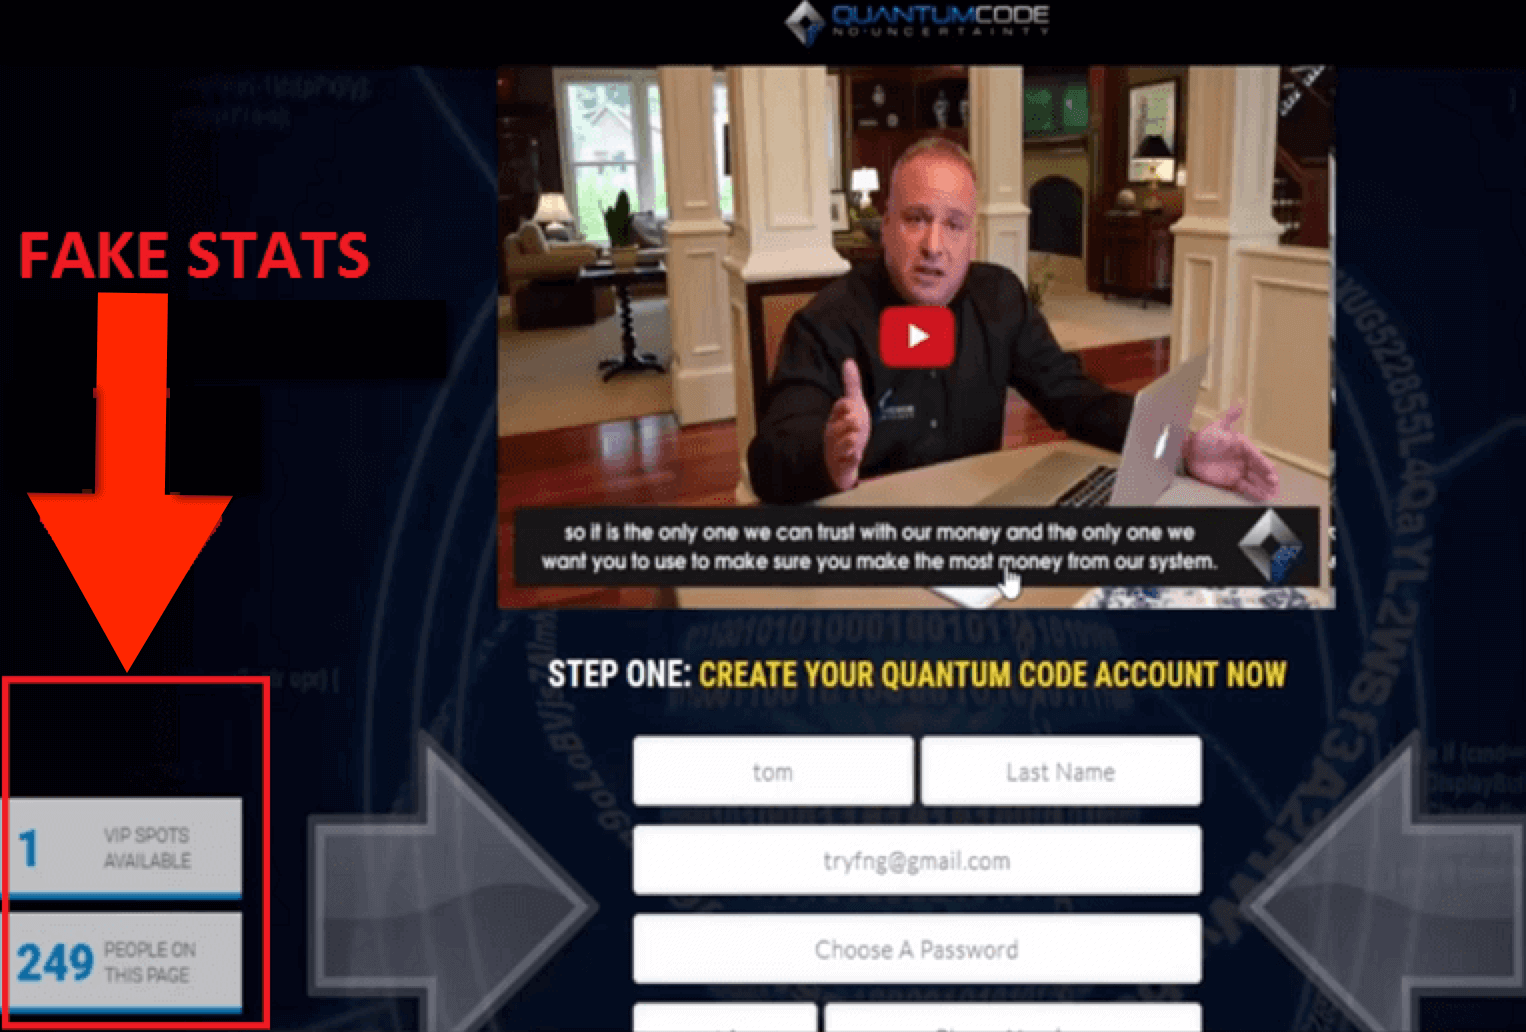 Michael Crawford the Quantum Code fake stats